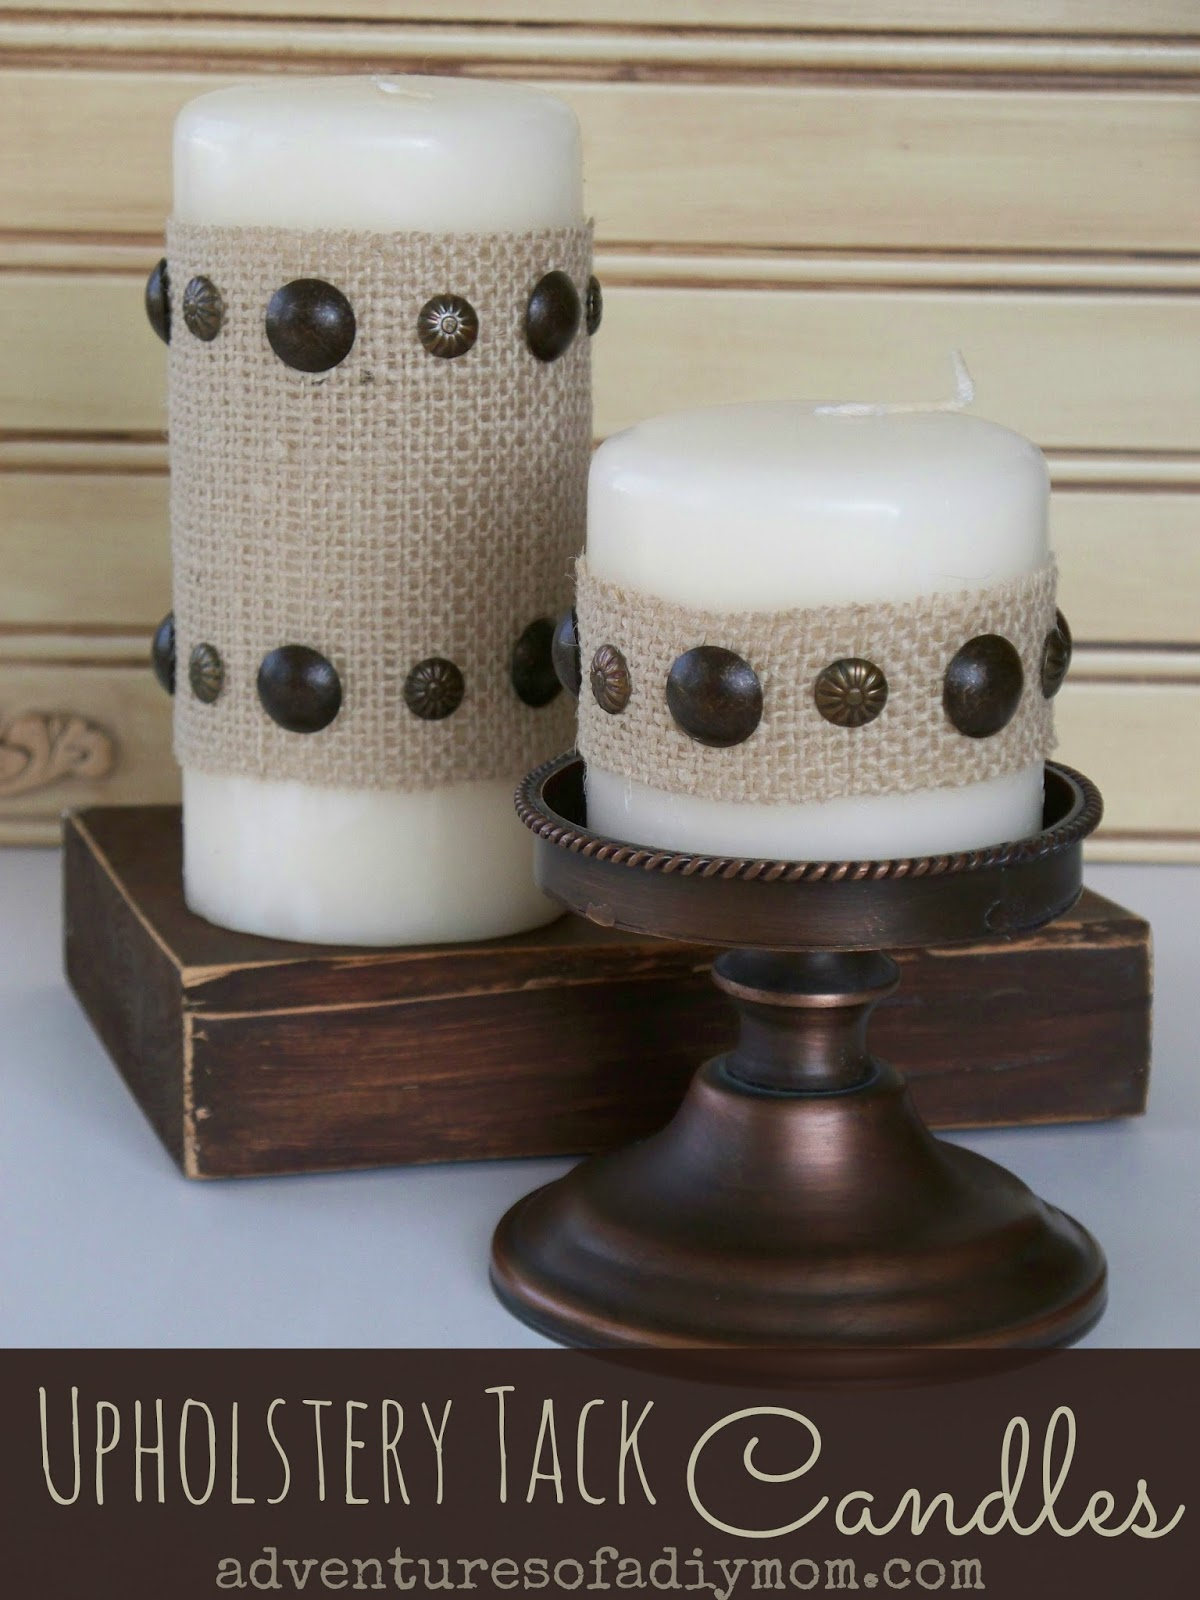 Uphostery Tack Candles